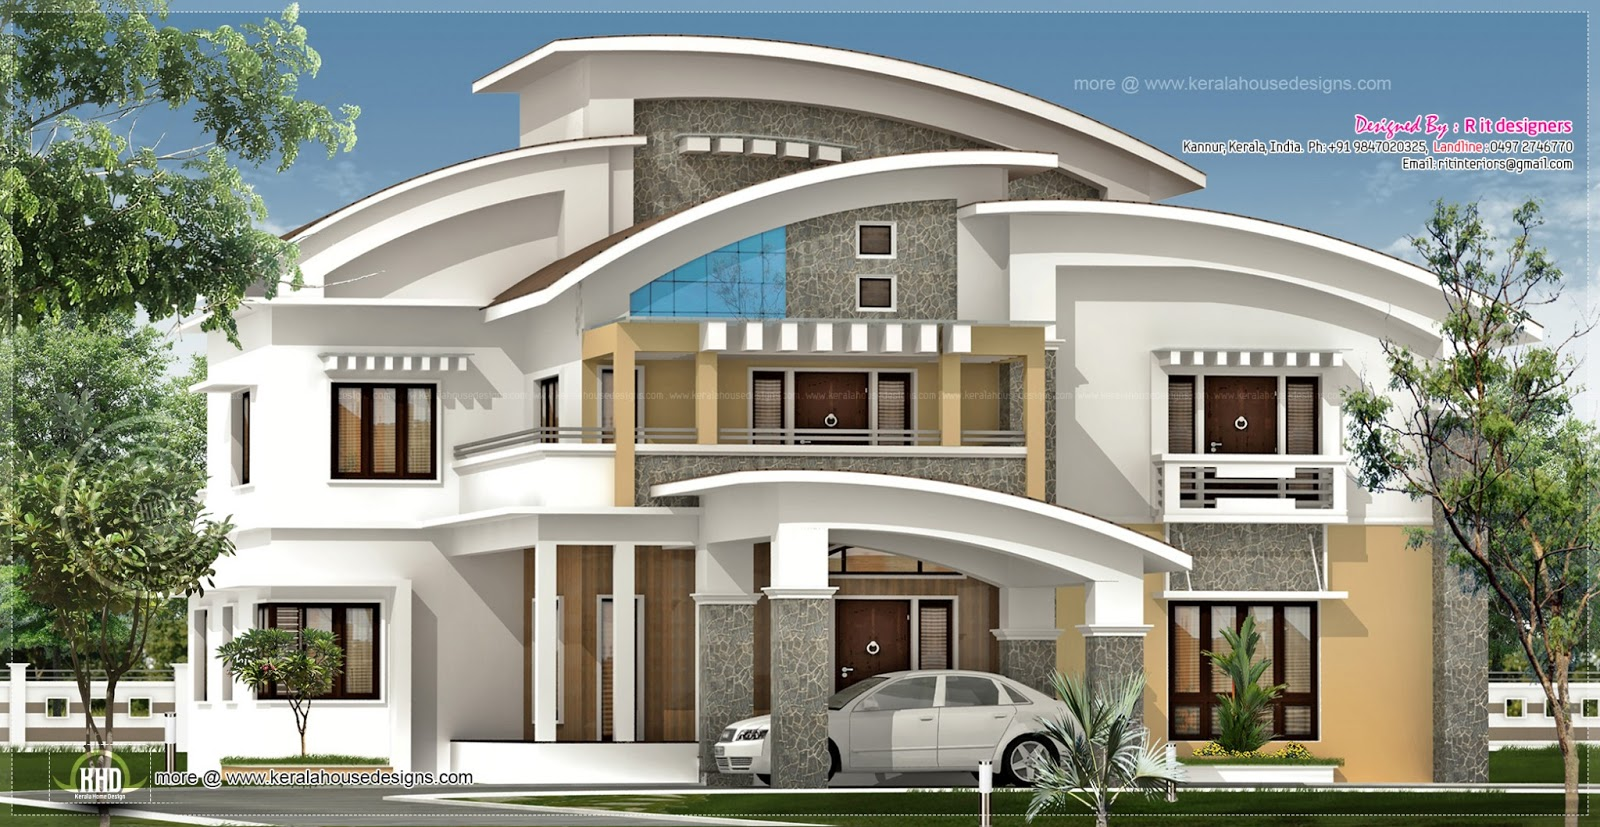 3750 Sq Ft Luxury Villa on One Story House Plans With Large Kitchens